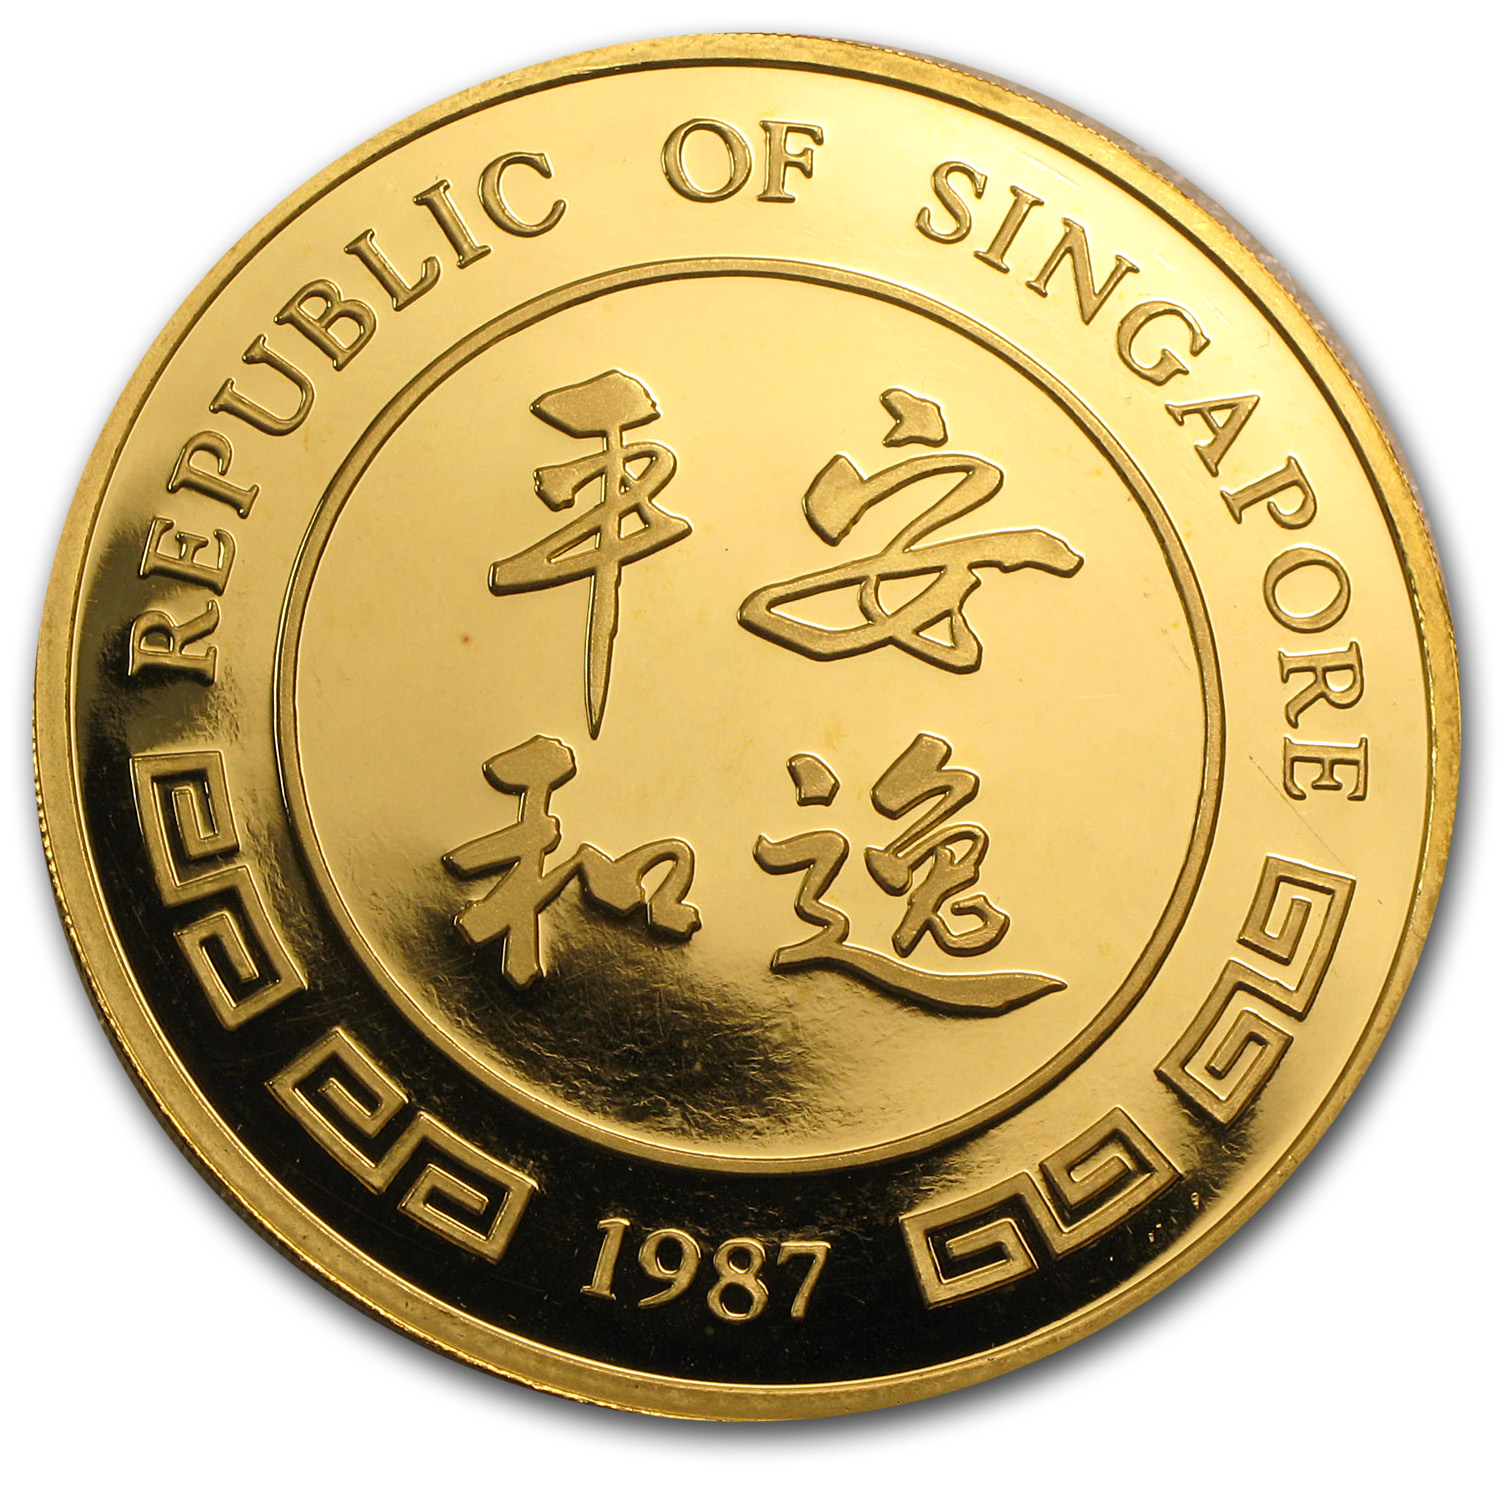 1987 Singapore 12 oz Proof Gold Year of the Rabbit